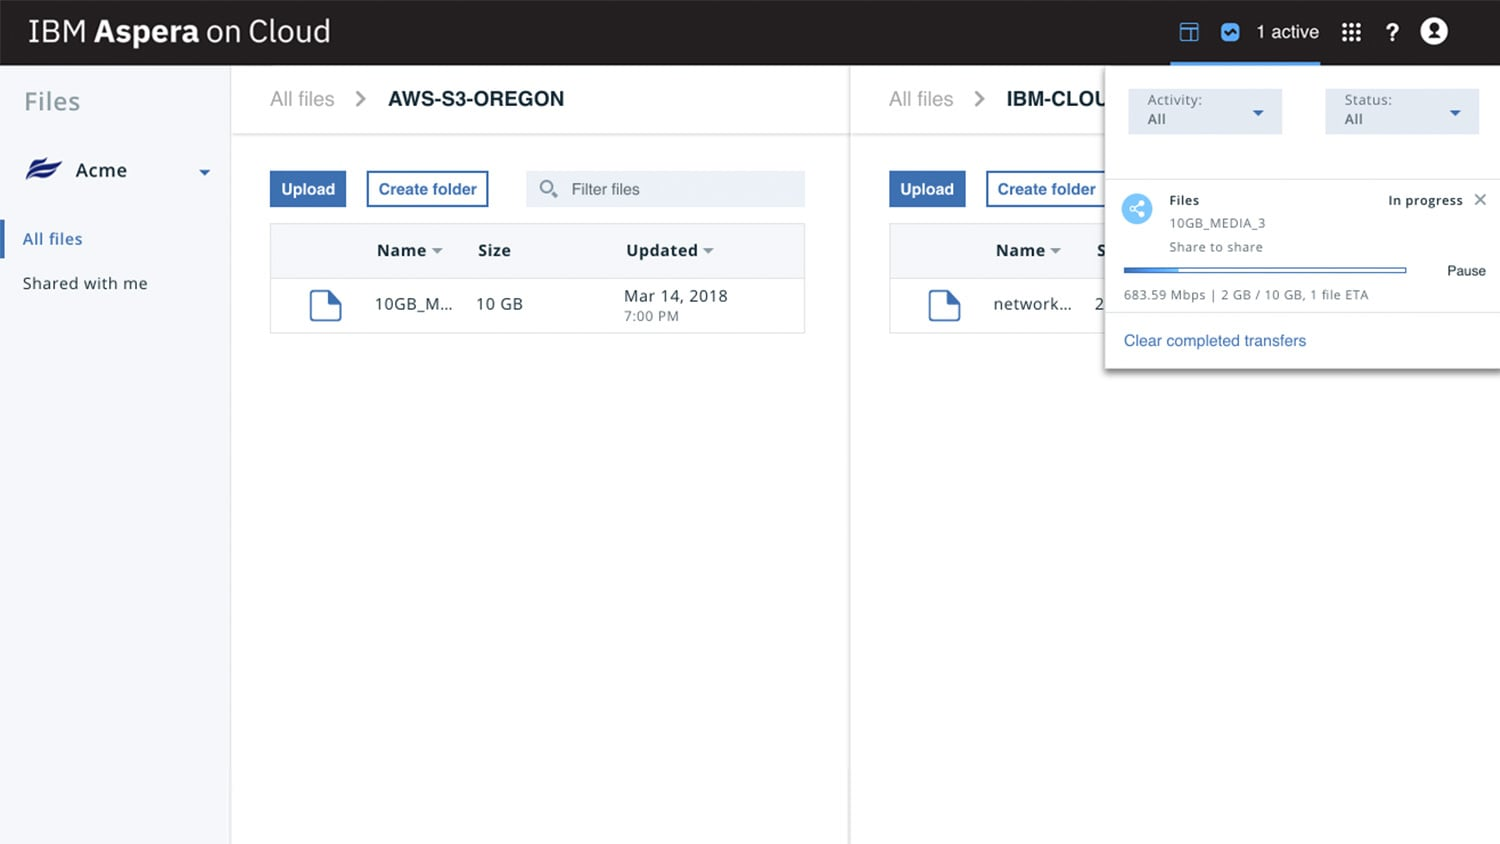 Screenshot zur Drag-and-drop-Funktion für Datenübertragungen in Aspera on Cloud